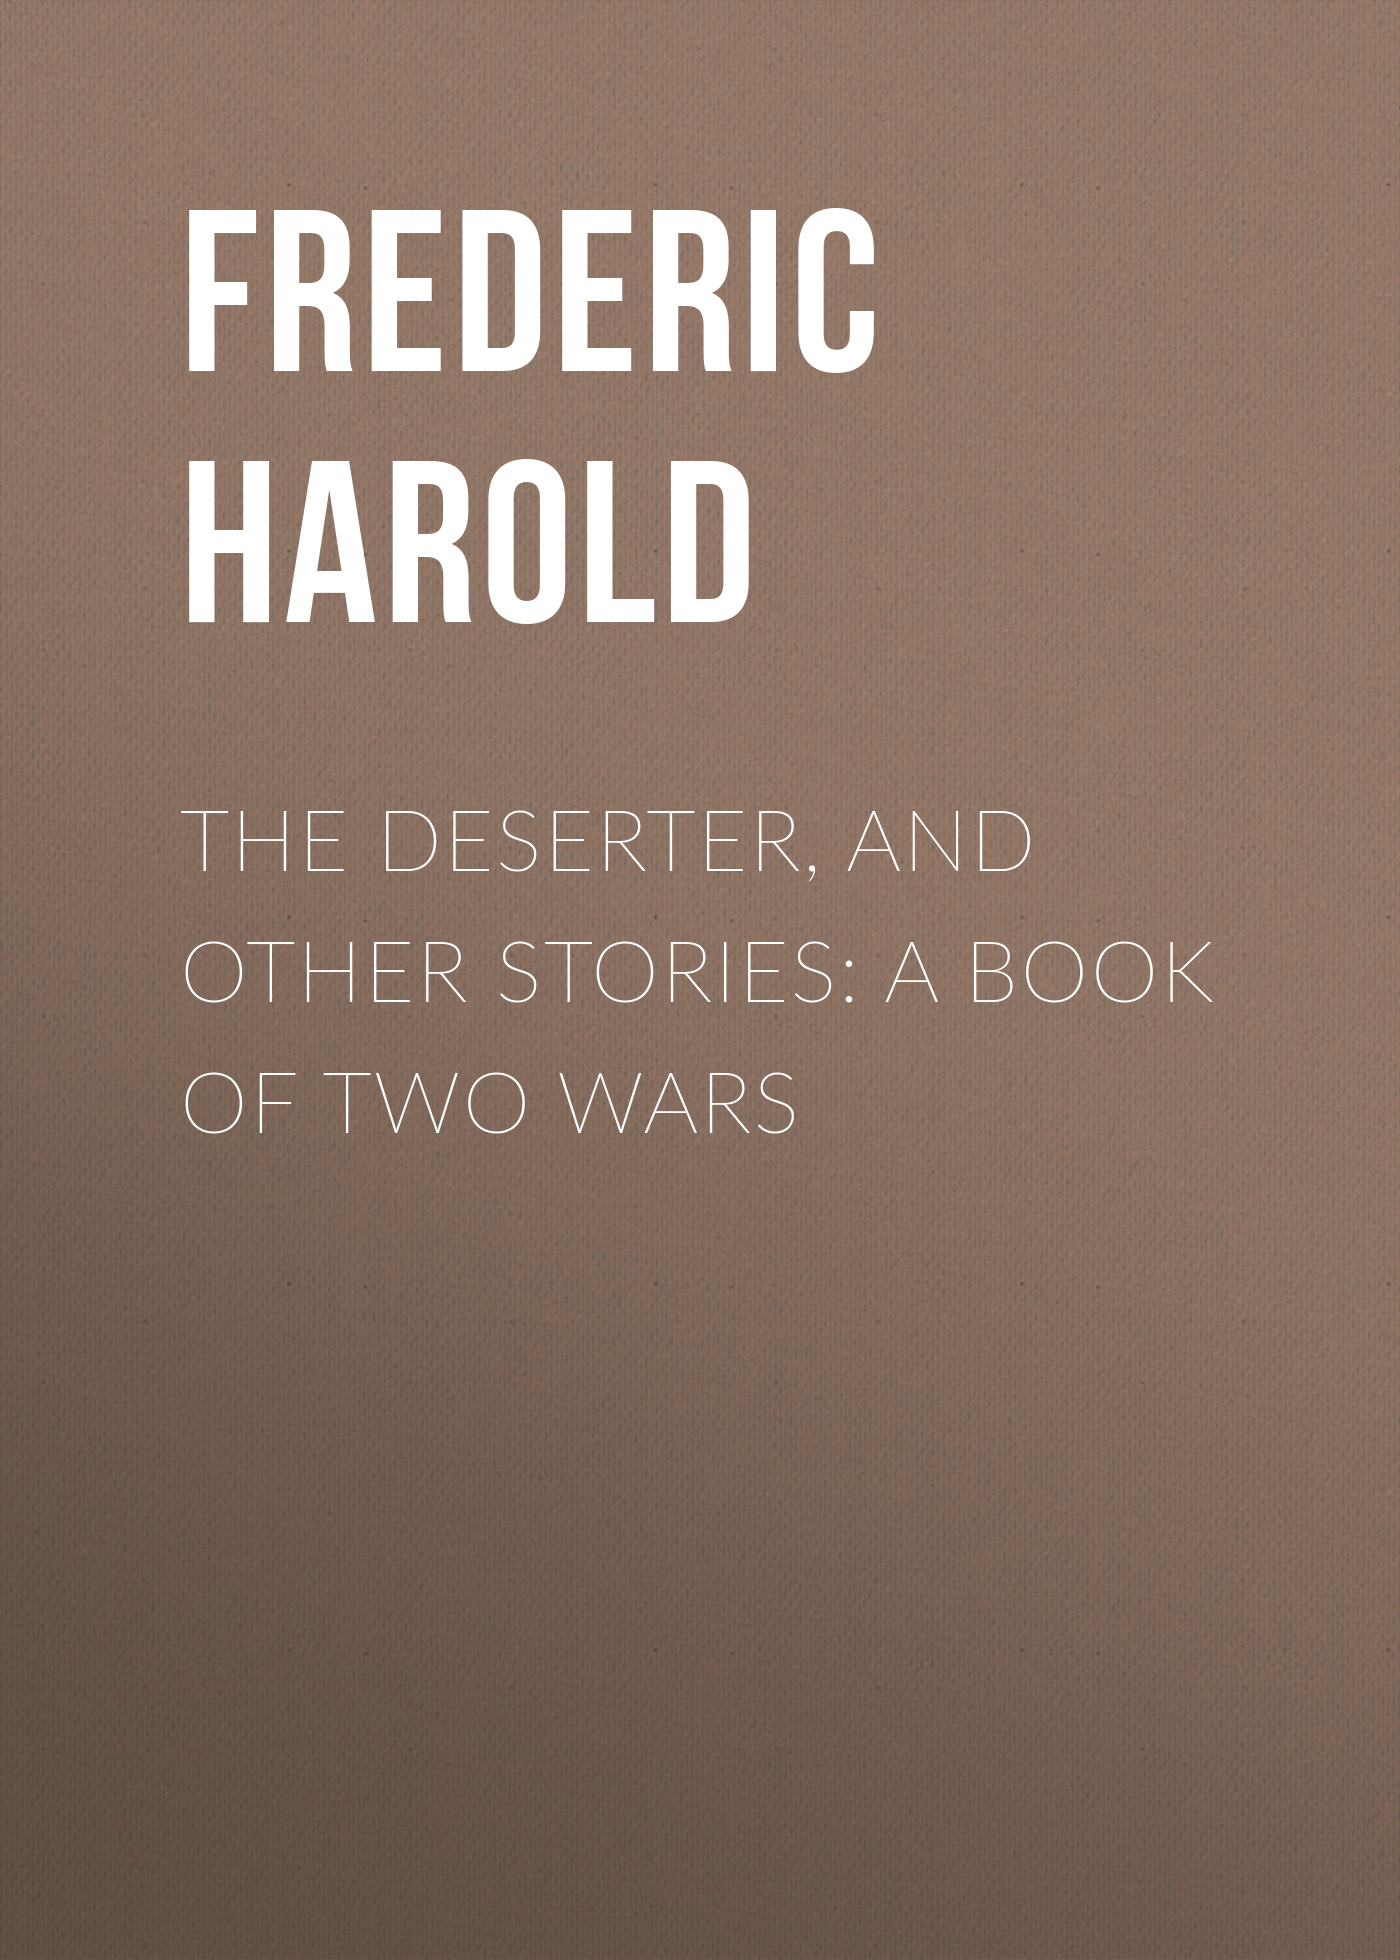 Frederic Harold The Deserter, and Other Stories: A Book of Two Wars kummer frederic arnold the ivory snuff box